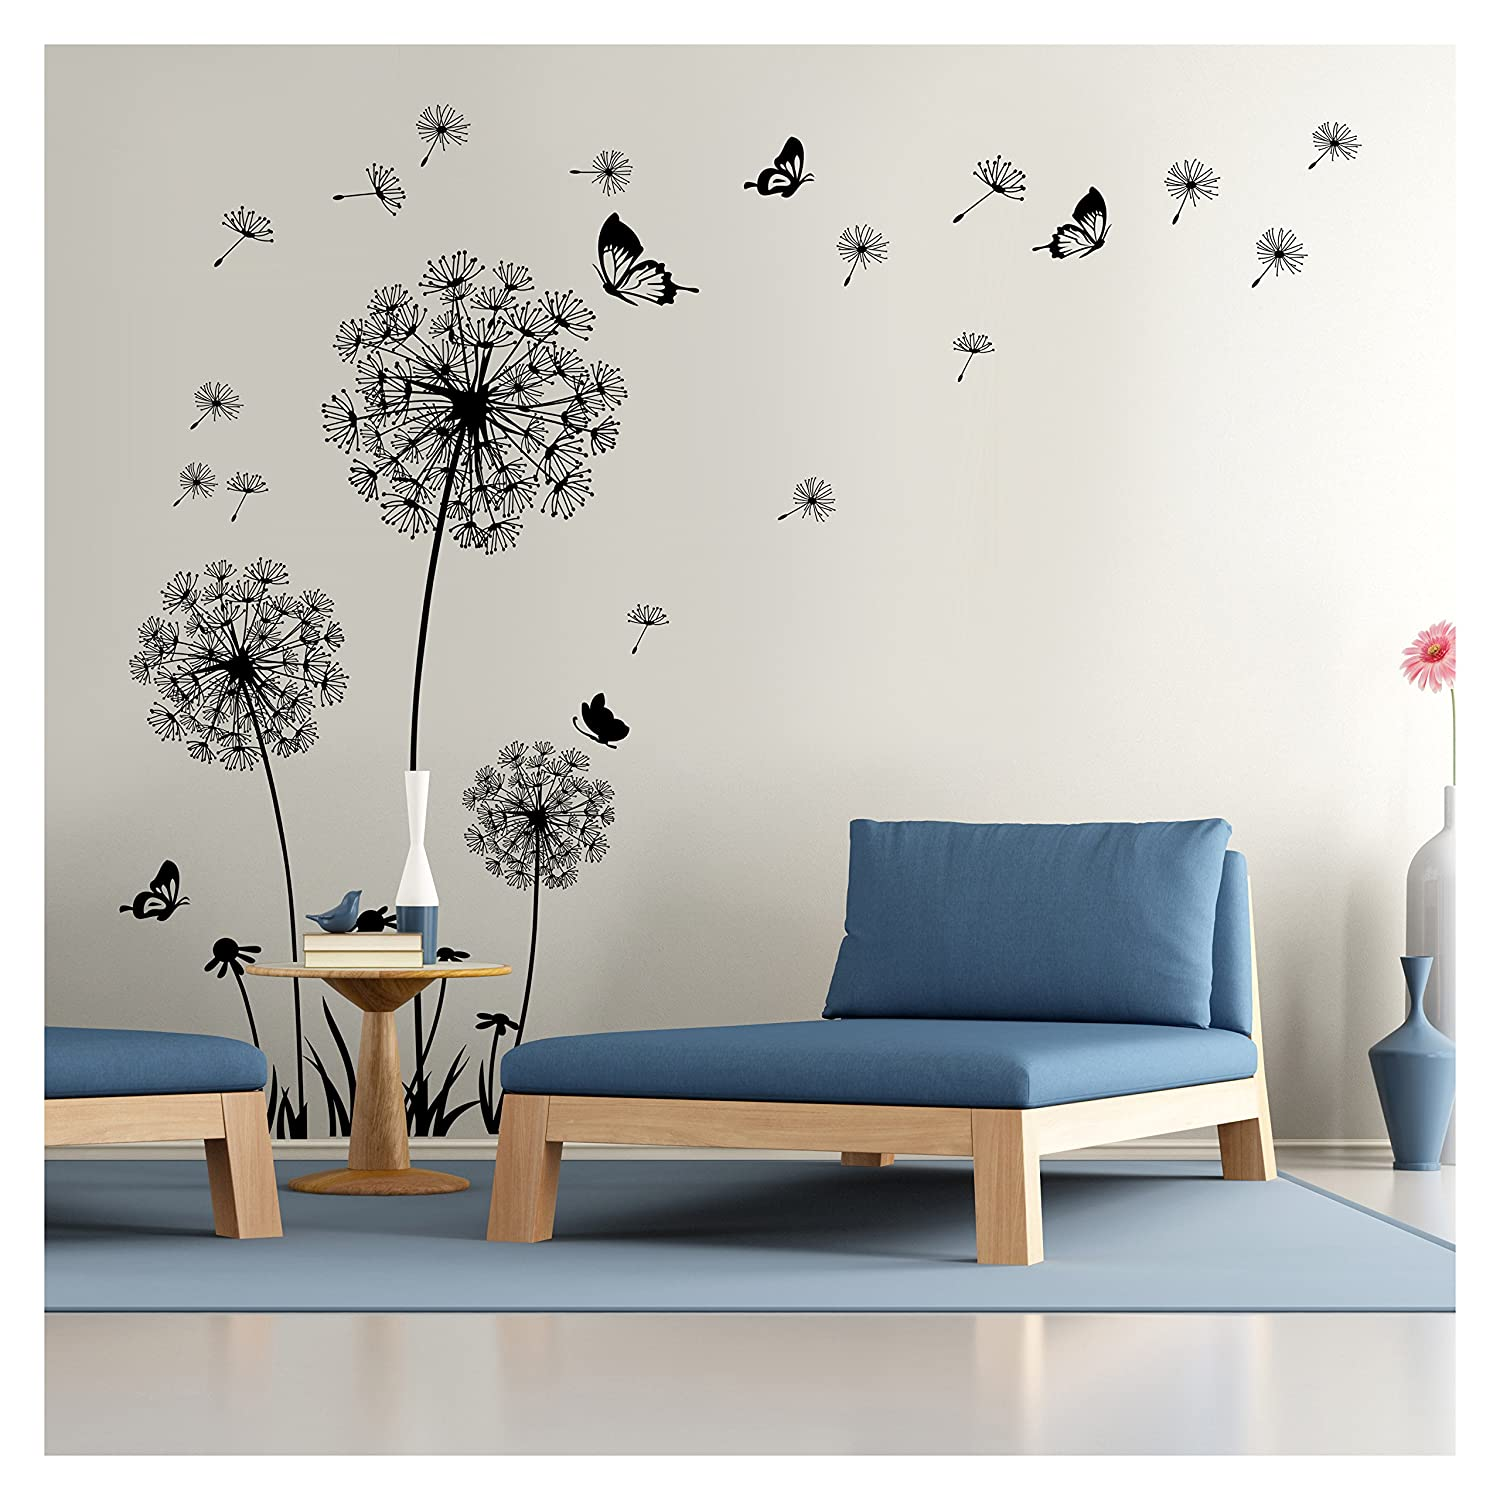 Amazon dandelion wall decal wall stickers dandelion art amazon dandelion wall decal wall stickers dandelion art decor vinyl large peel and stick mural removable by dooboe home kitchen amipublicfo Images